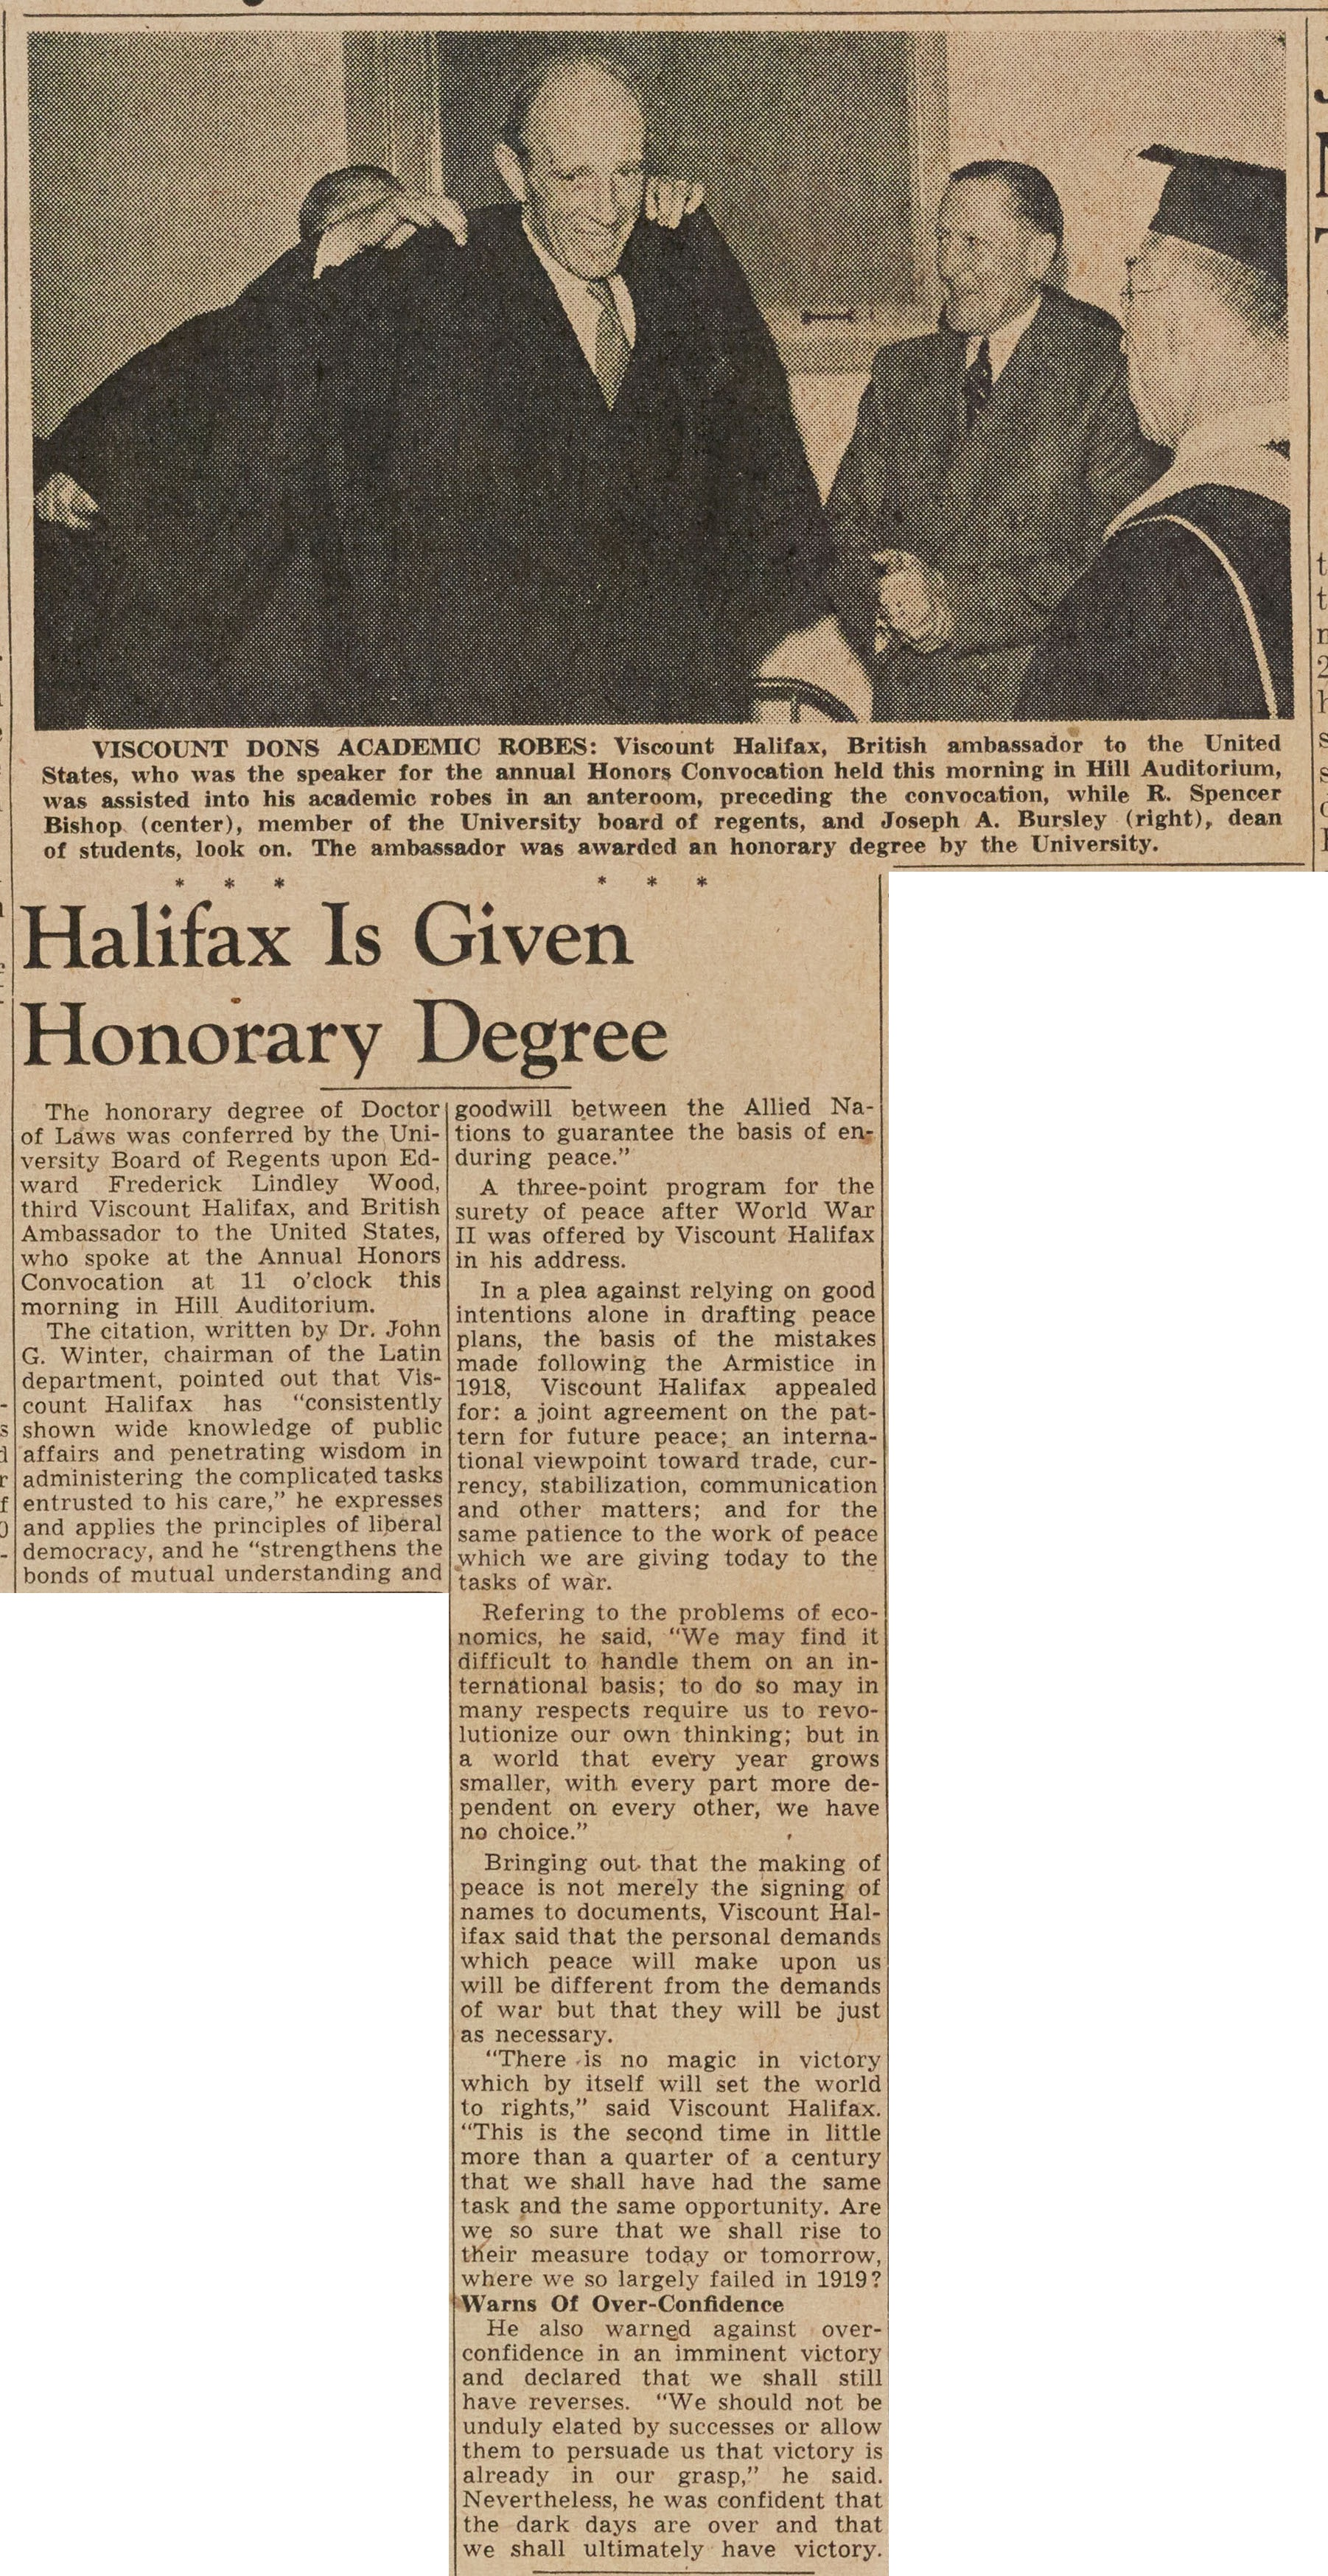 Halifax Is Given Honorary Degree image